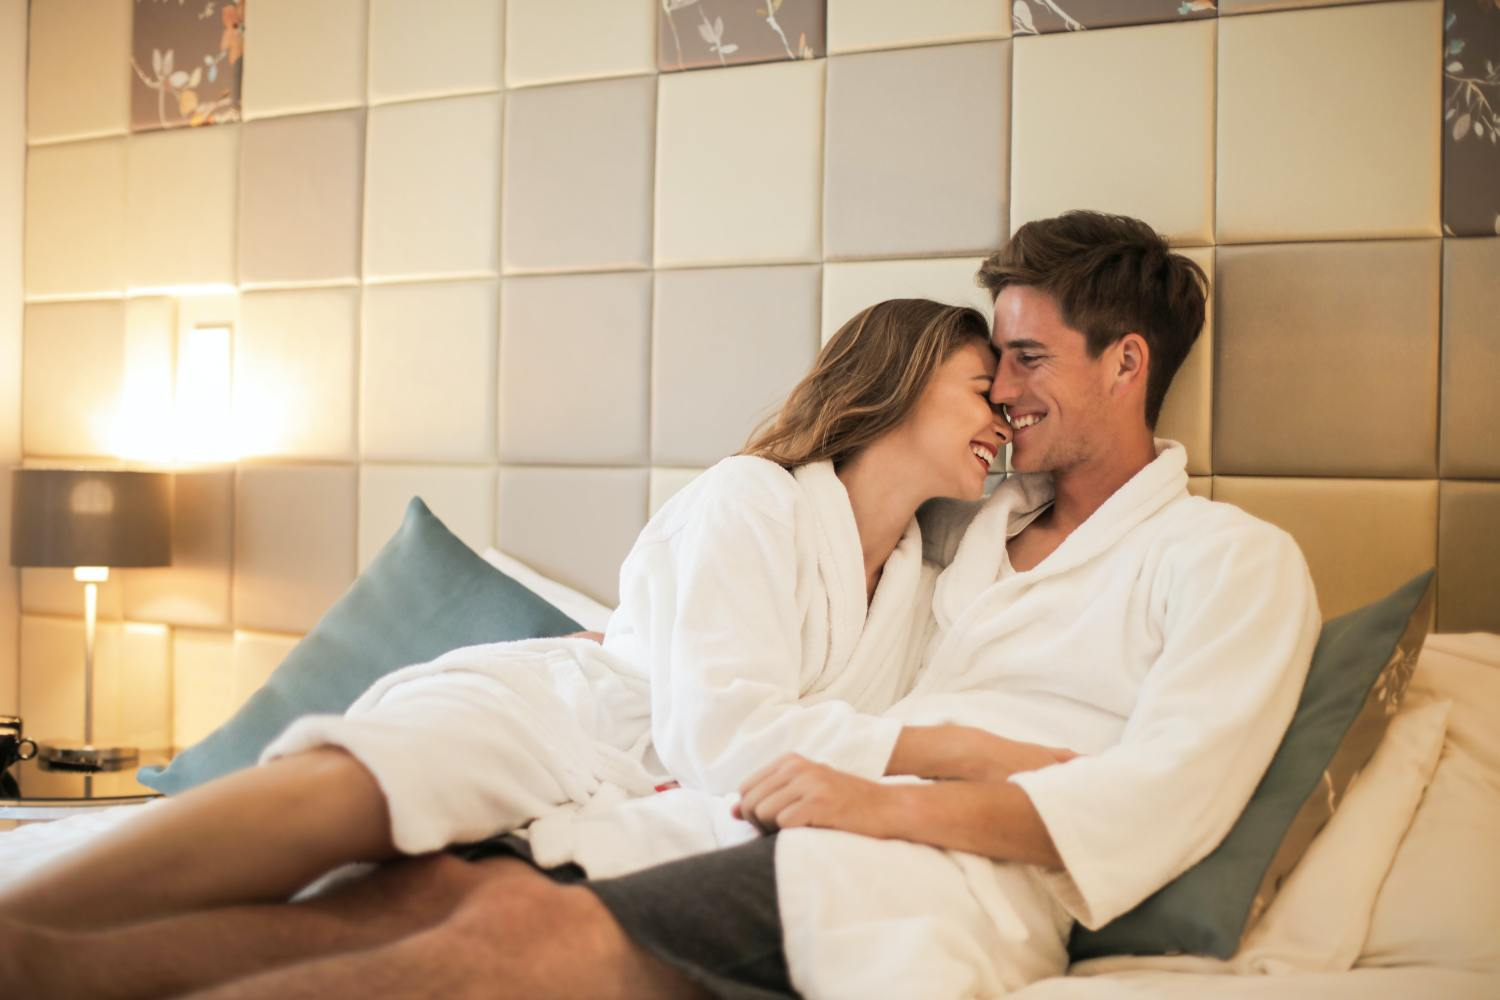 Real Men Reveal The 11 Ways They Know A Girl Is Wife-material